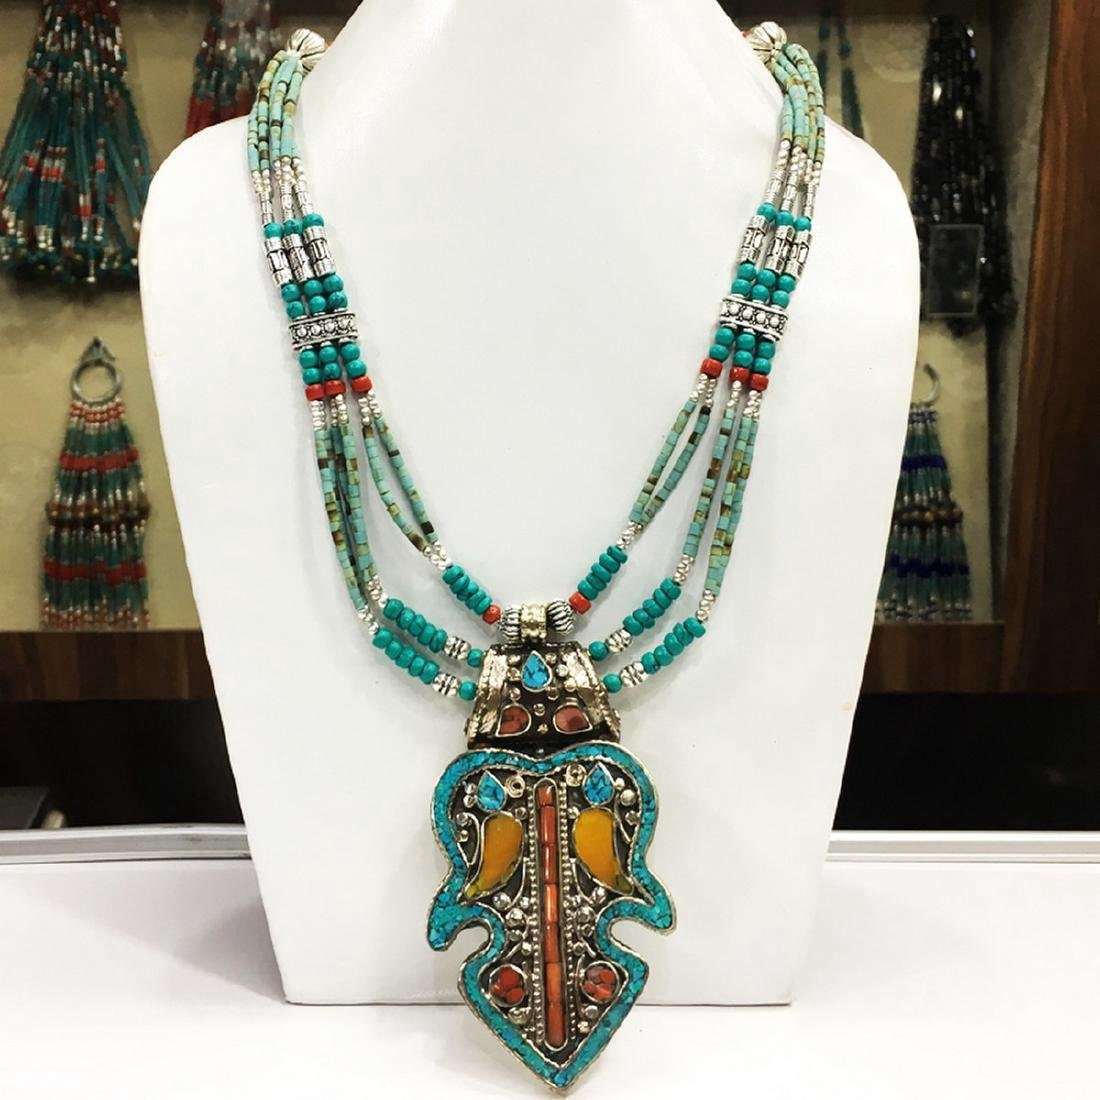 Tibetan Silver Women's Turquoise Coral Necklace